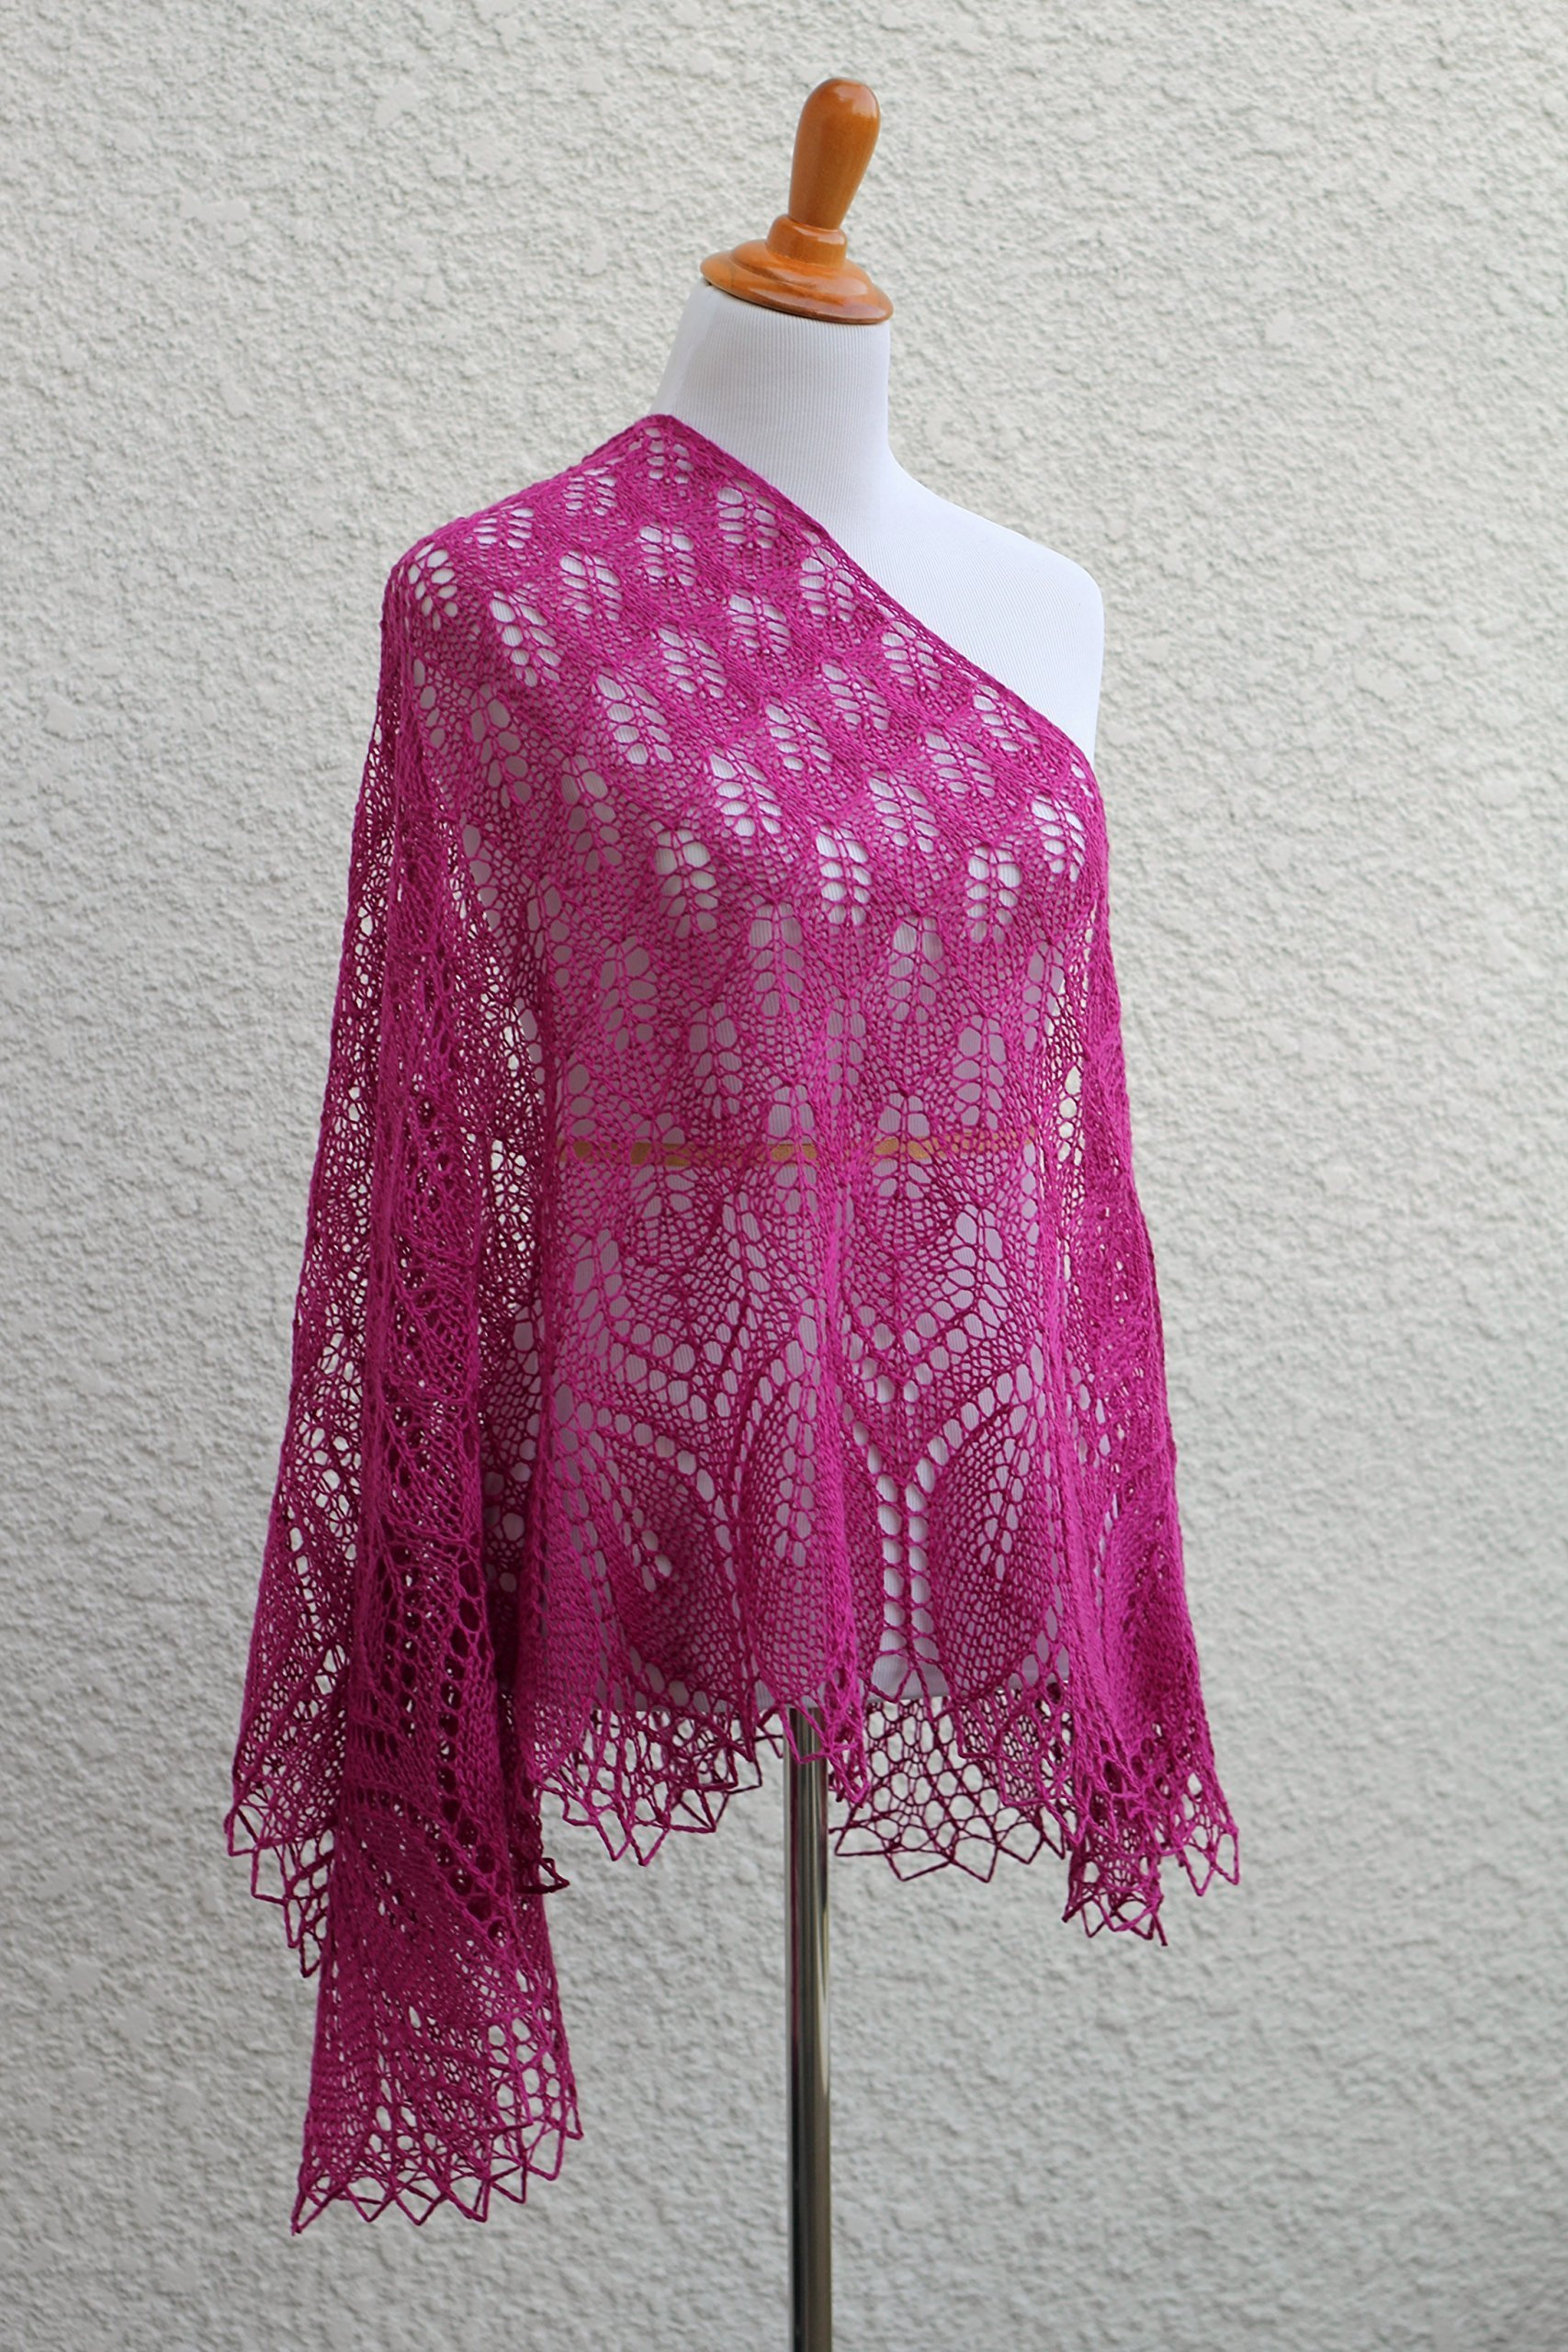 Knit shawl in fuchsia color, gift for her